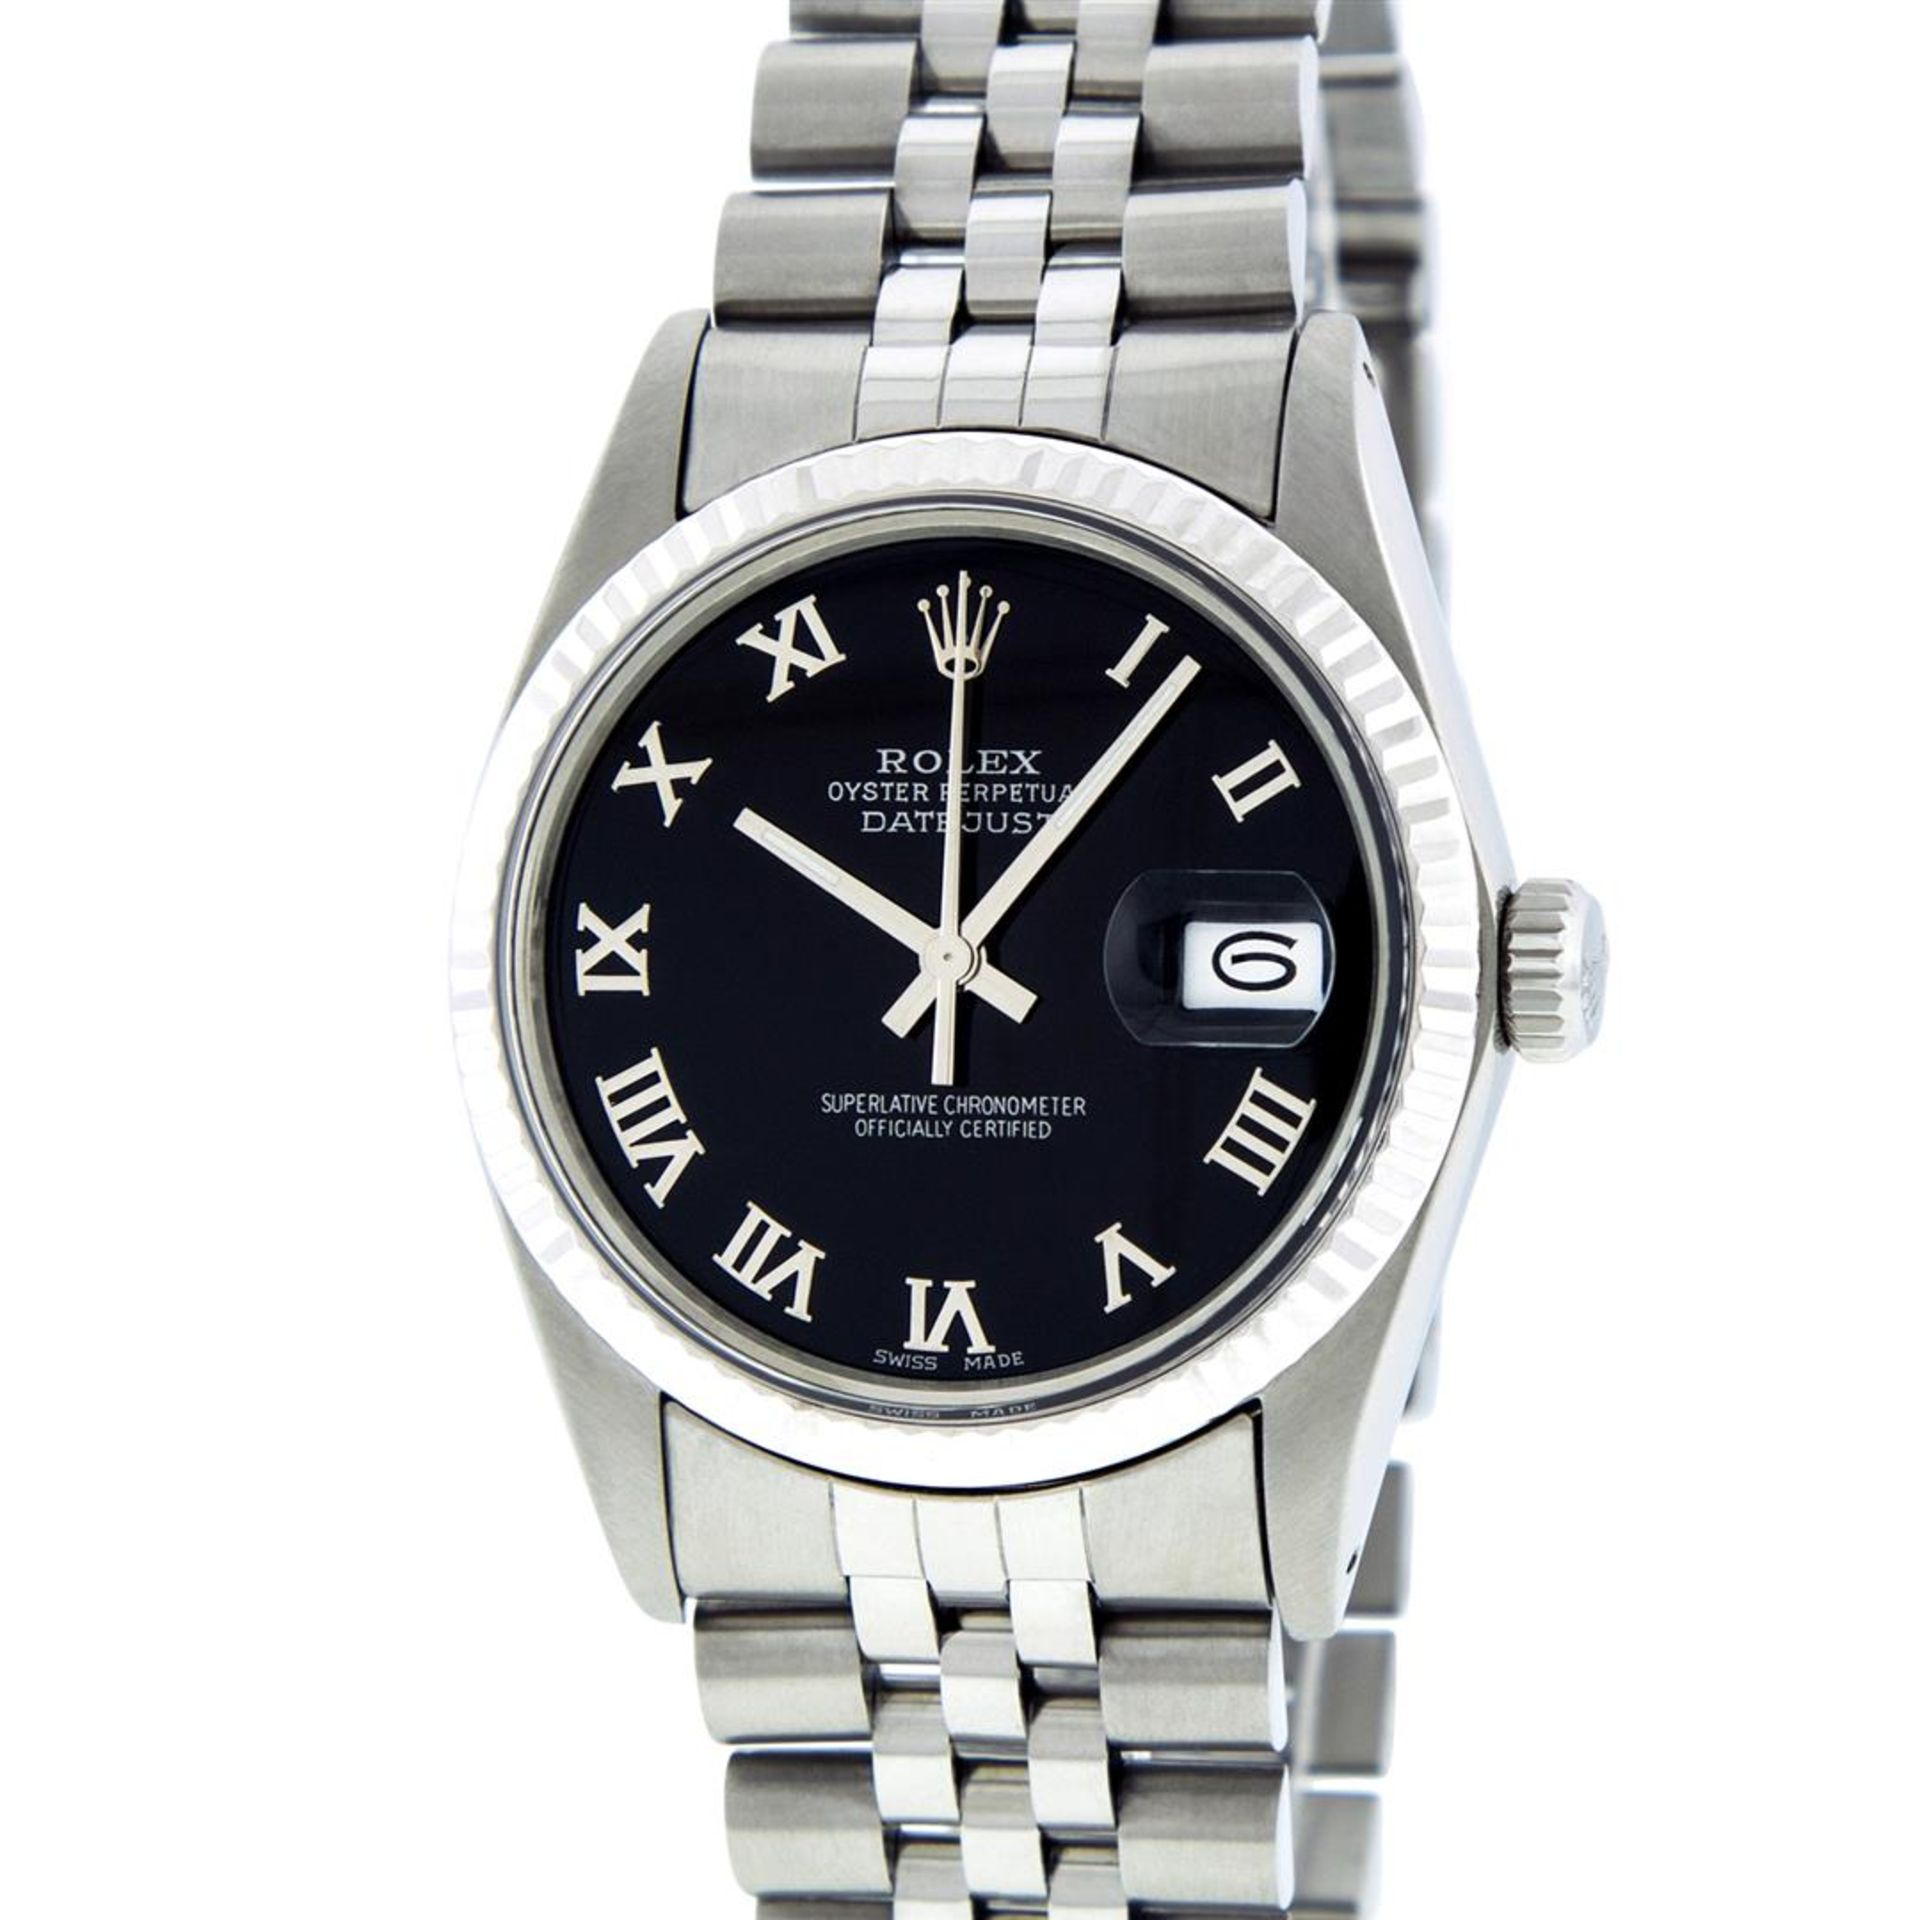 Rolex Mens Stainless Steel Black Roman Datejust 36MM Wriswatch Datejust - Image 2 of 8